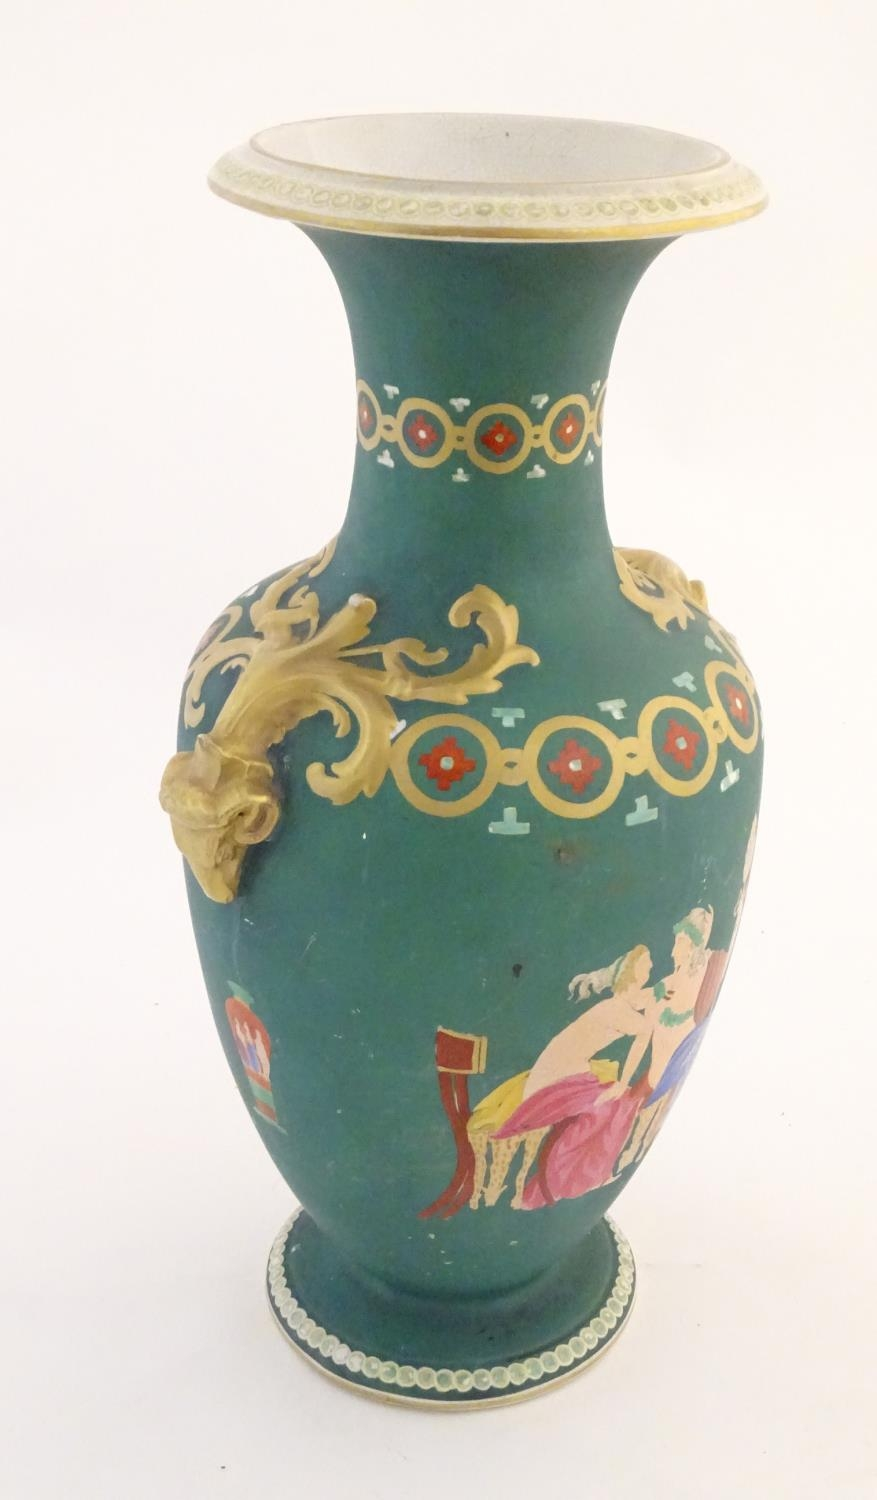 A Prattware baluster vase with Classical decoration depicting a Roman gladiator and chariot etc. - Image 3 of 12